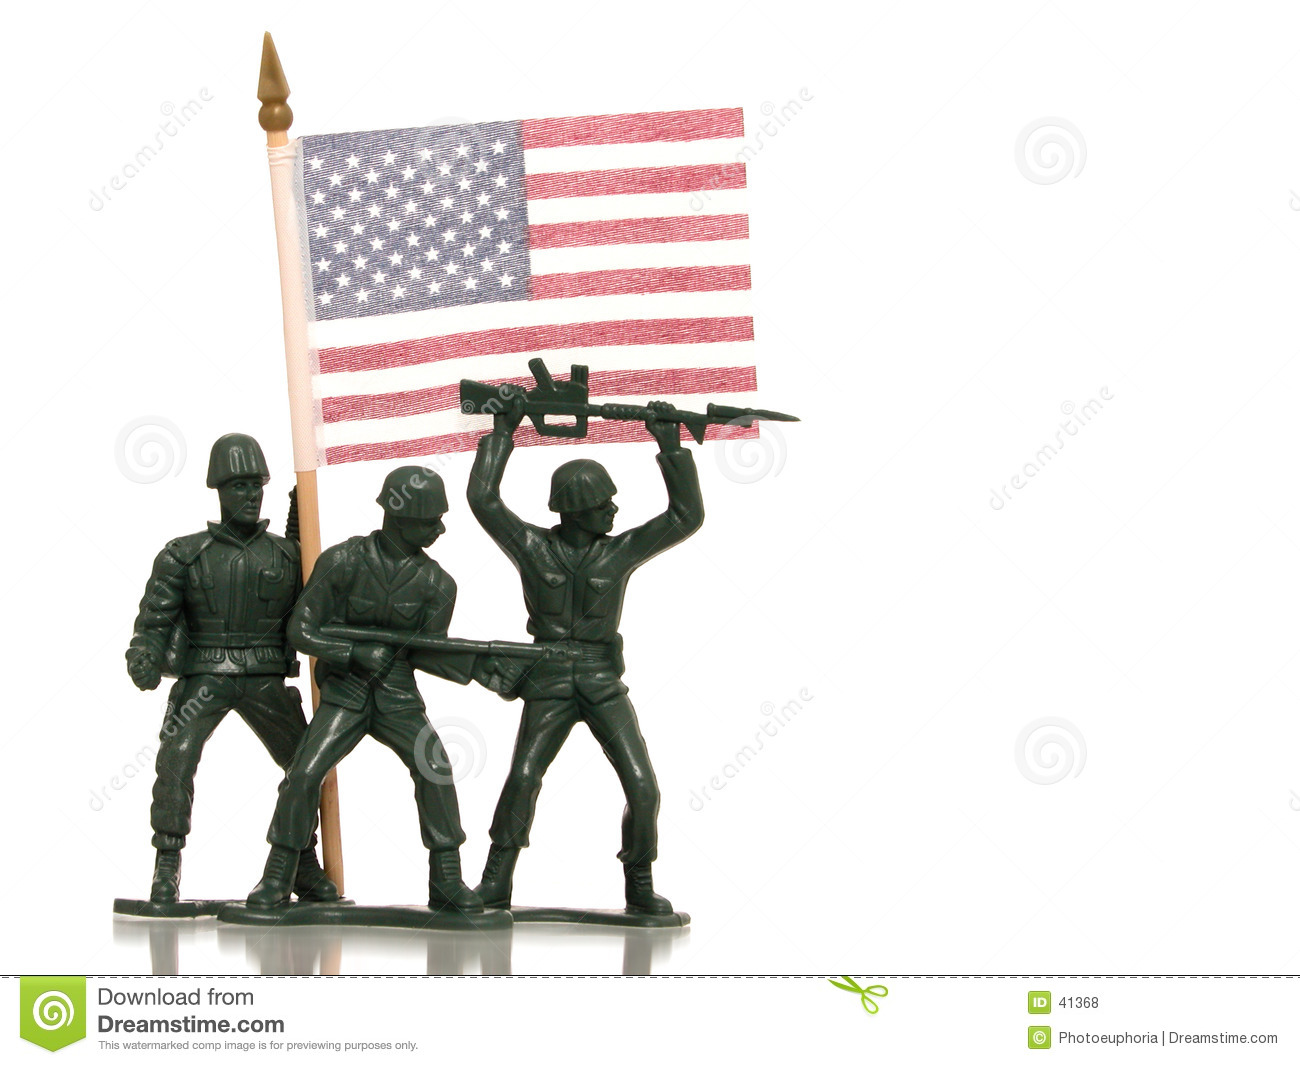 Toy Green Army Men with US Flag on White